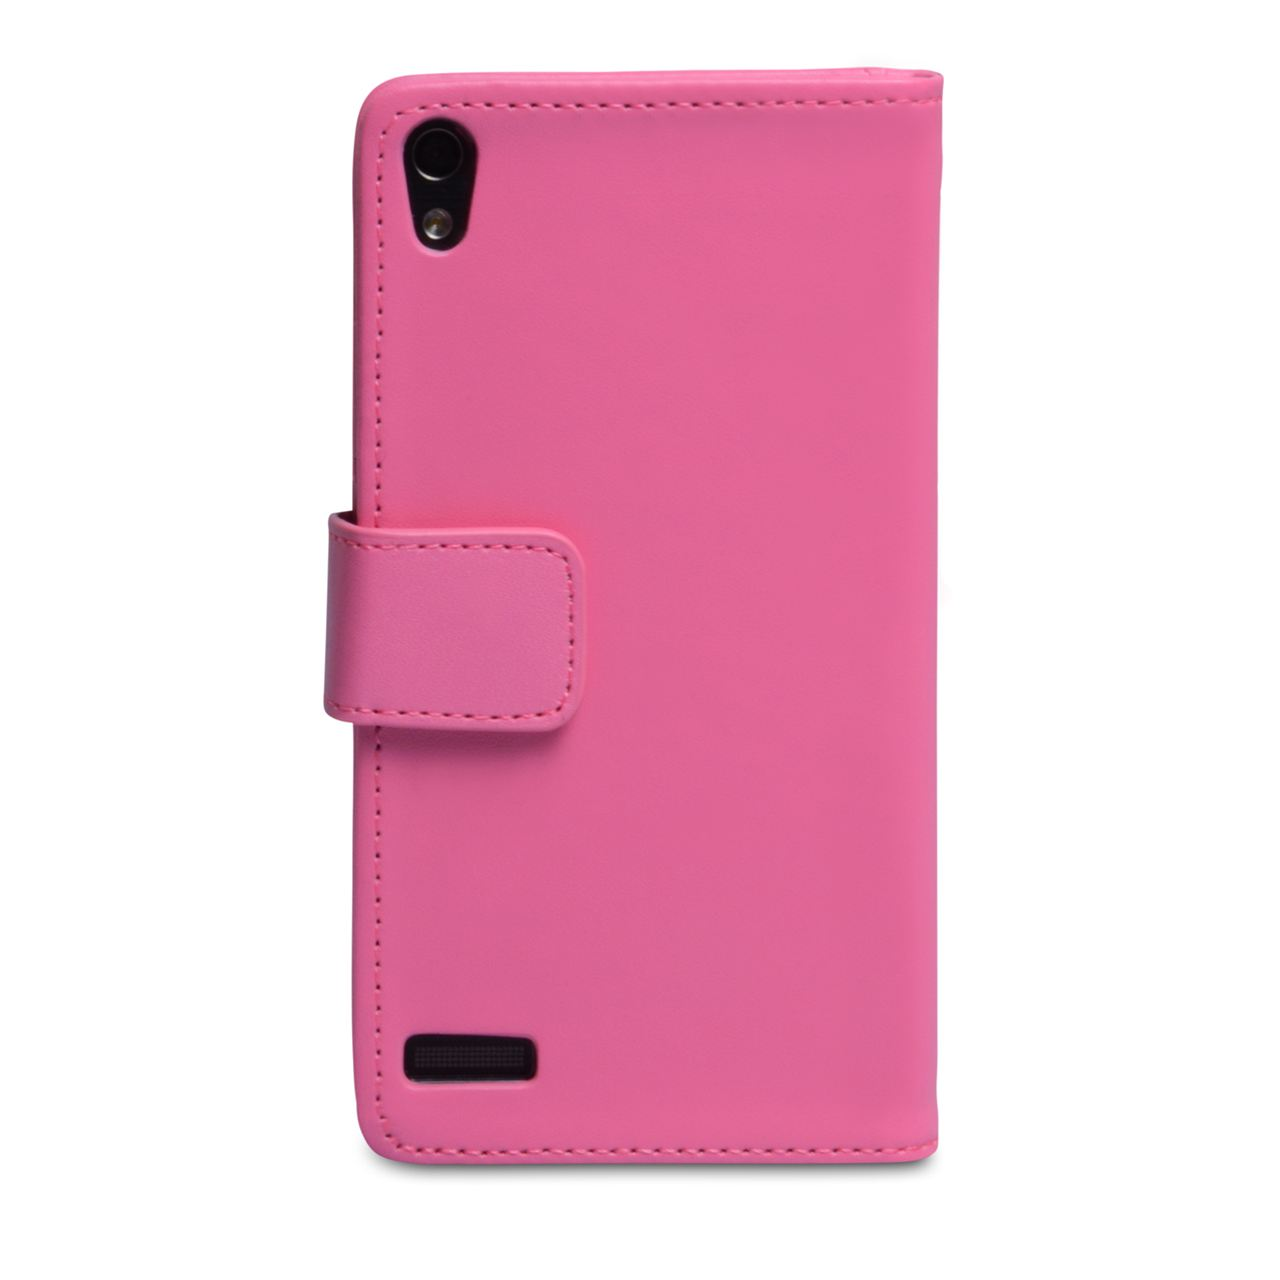 YouSave Huawei Ascend P6 Leather-Effect Wallet Case - Hot Pink